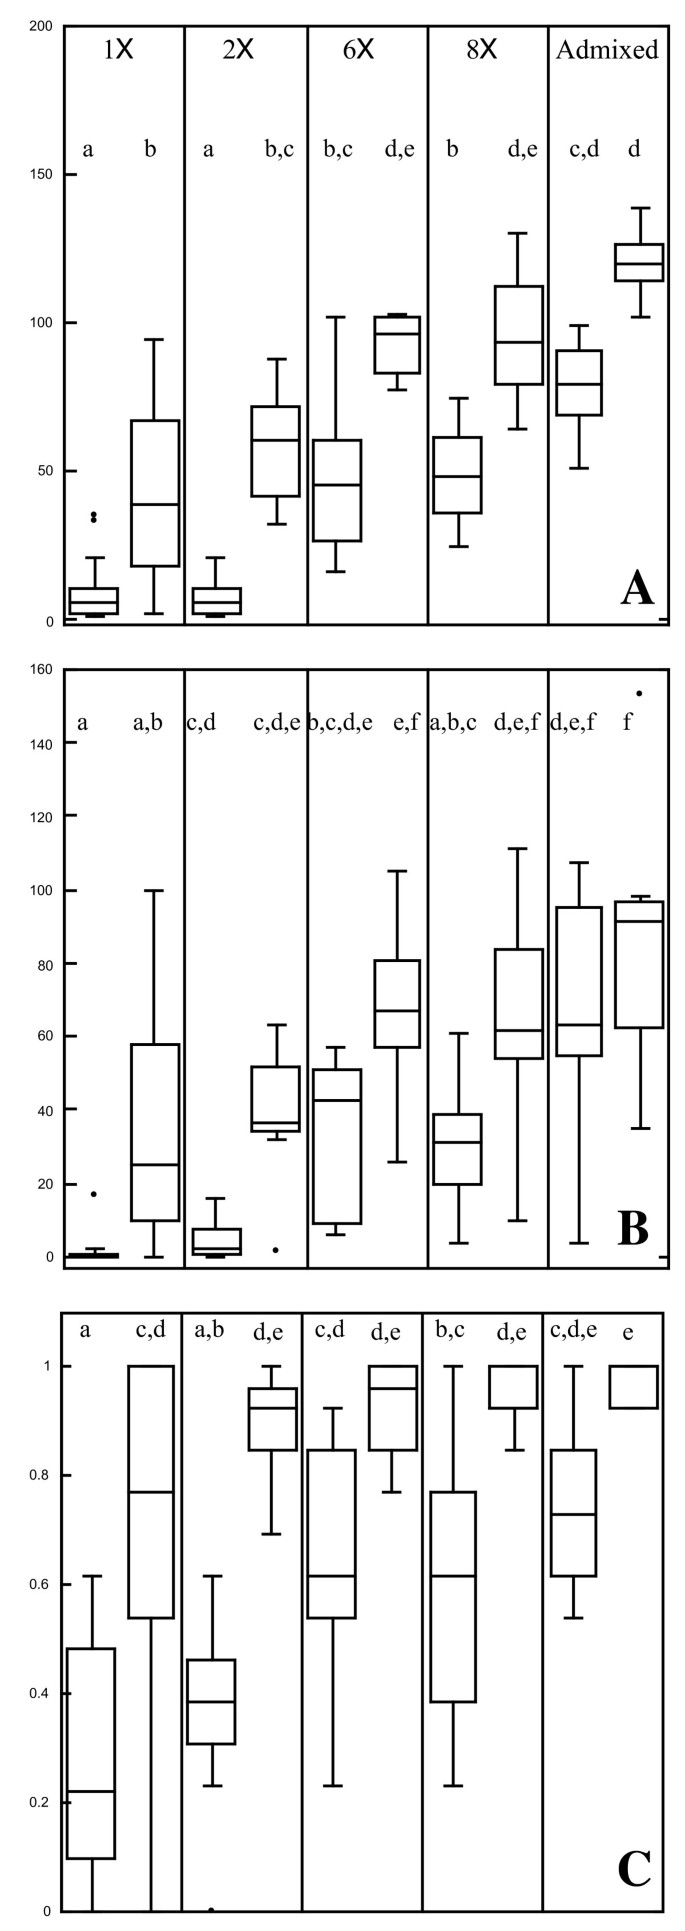 Population genetic diversity and fitness in multiple